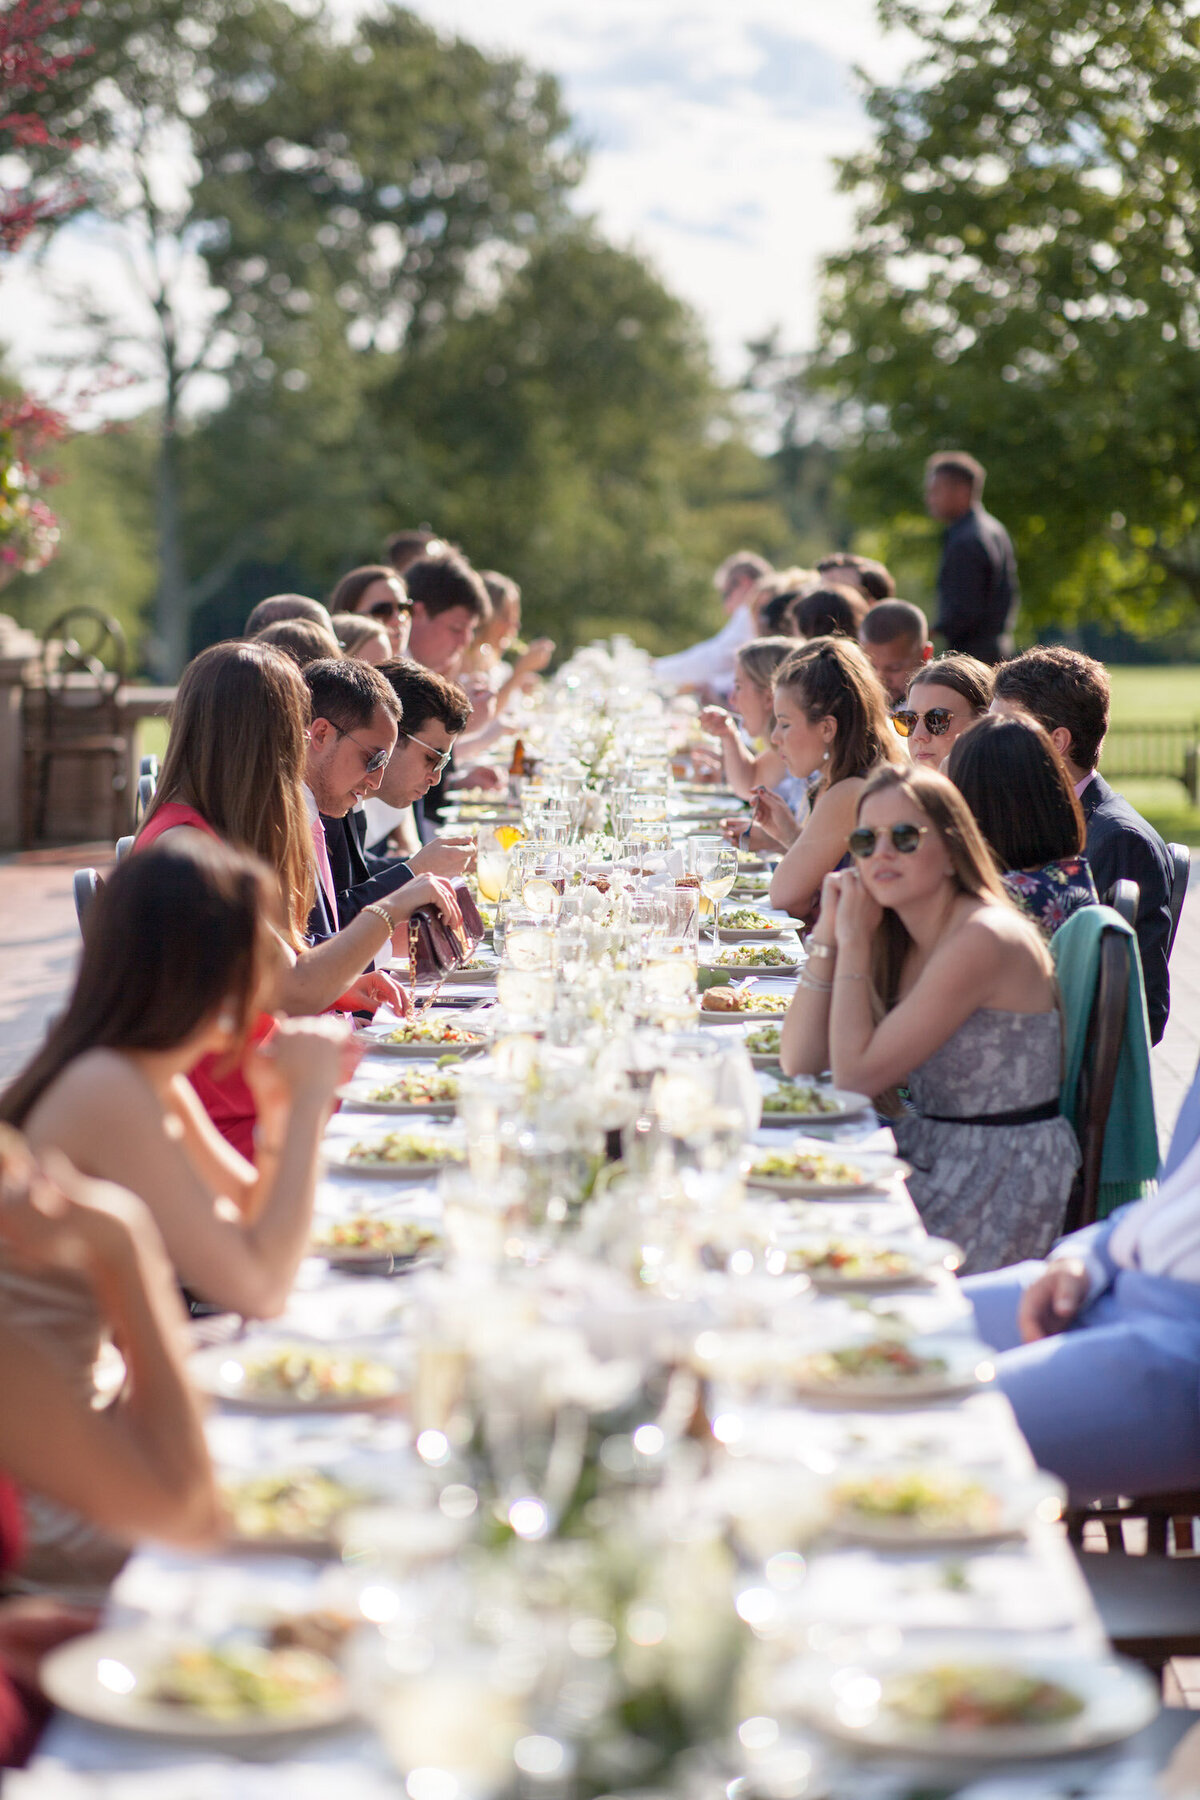 waveny-house-wedding-catering-forks-and-fingers-catering-6